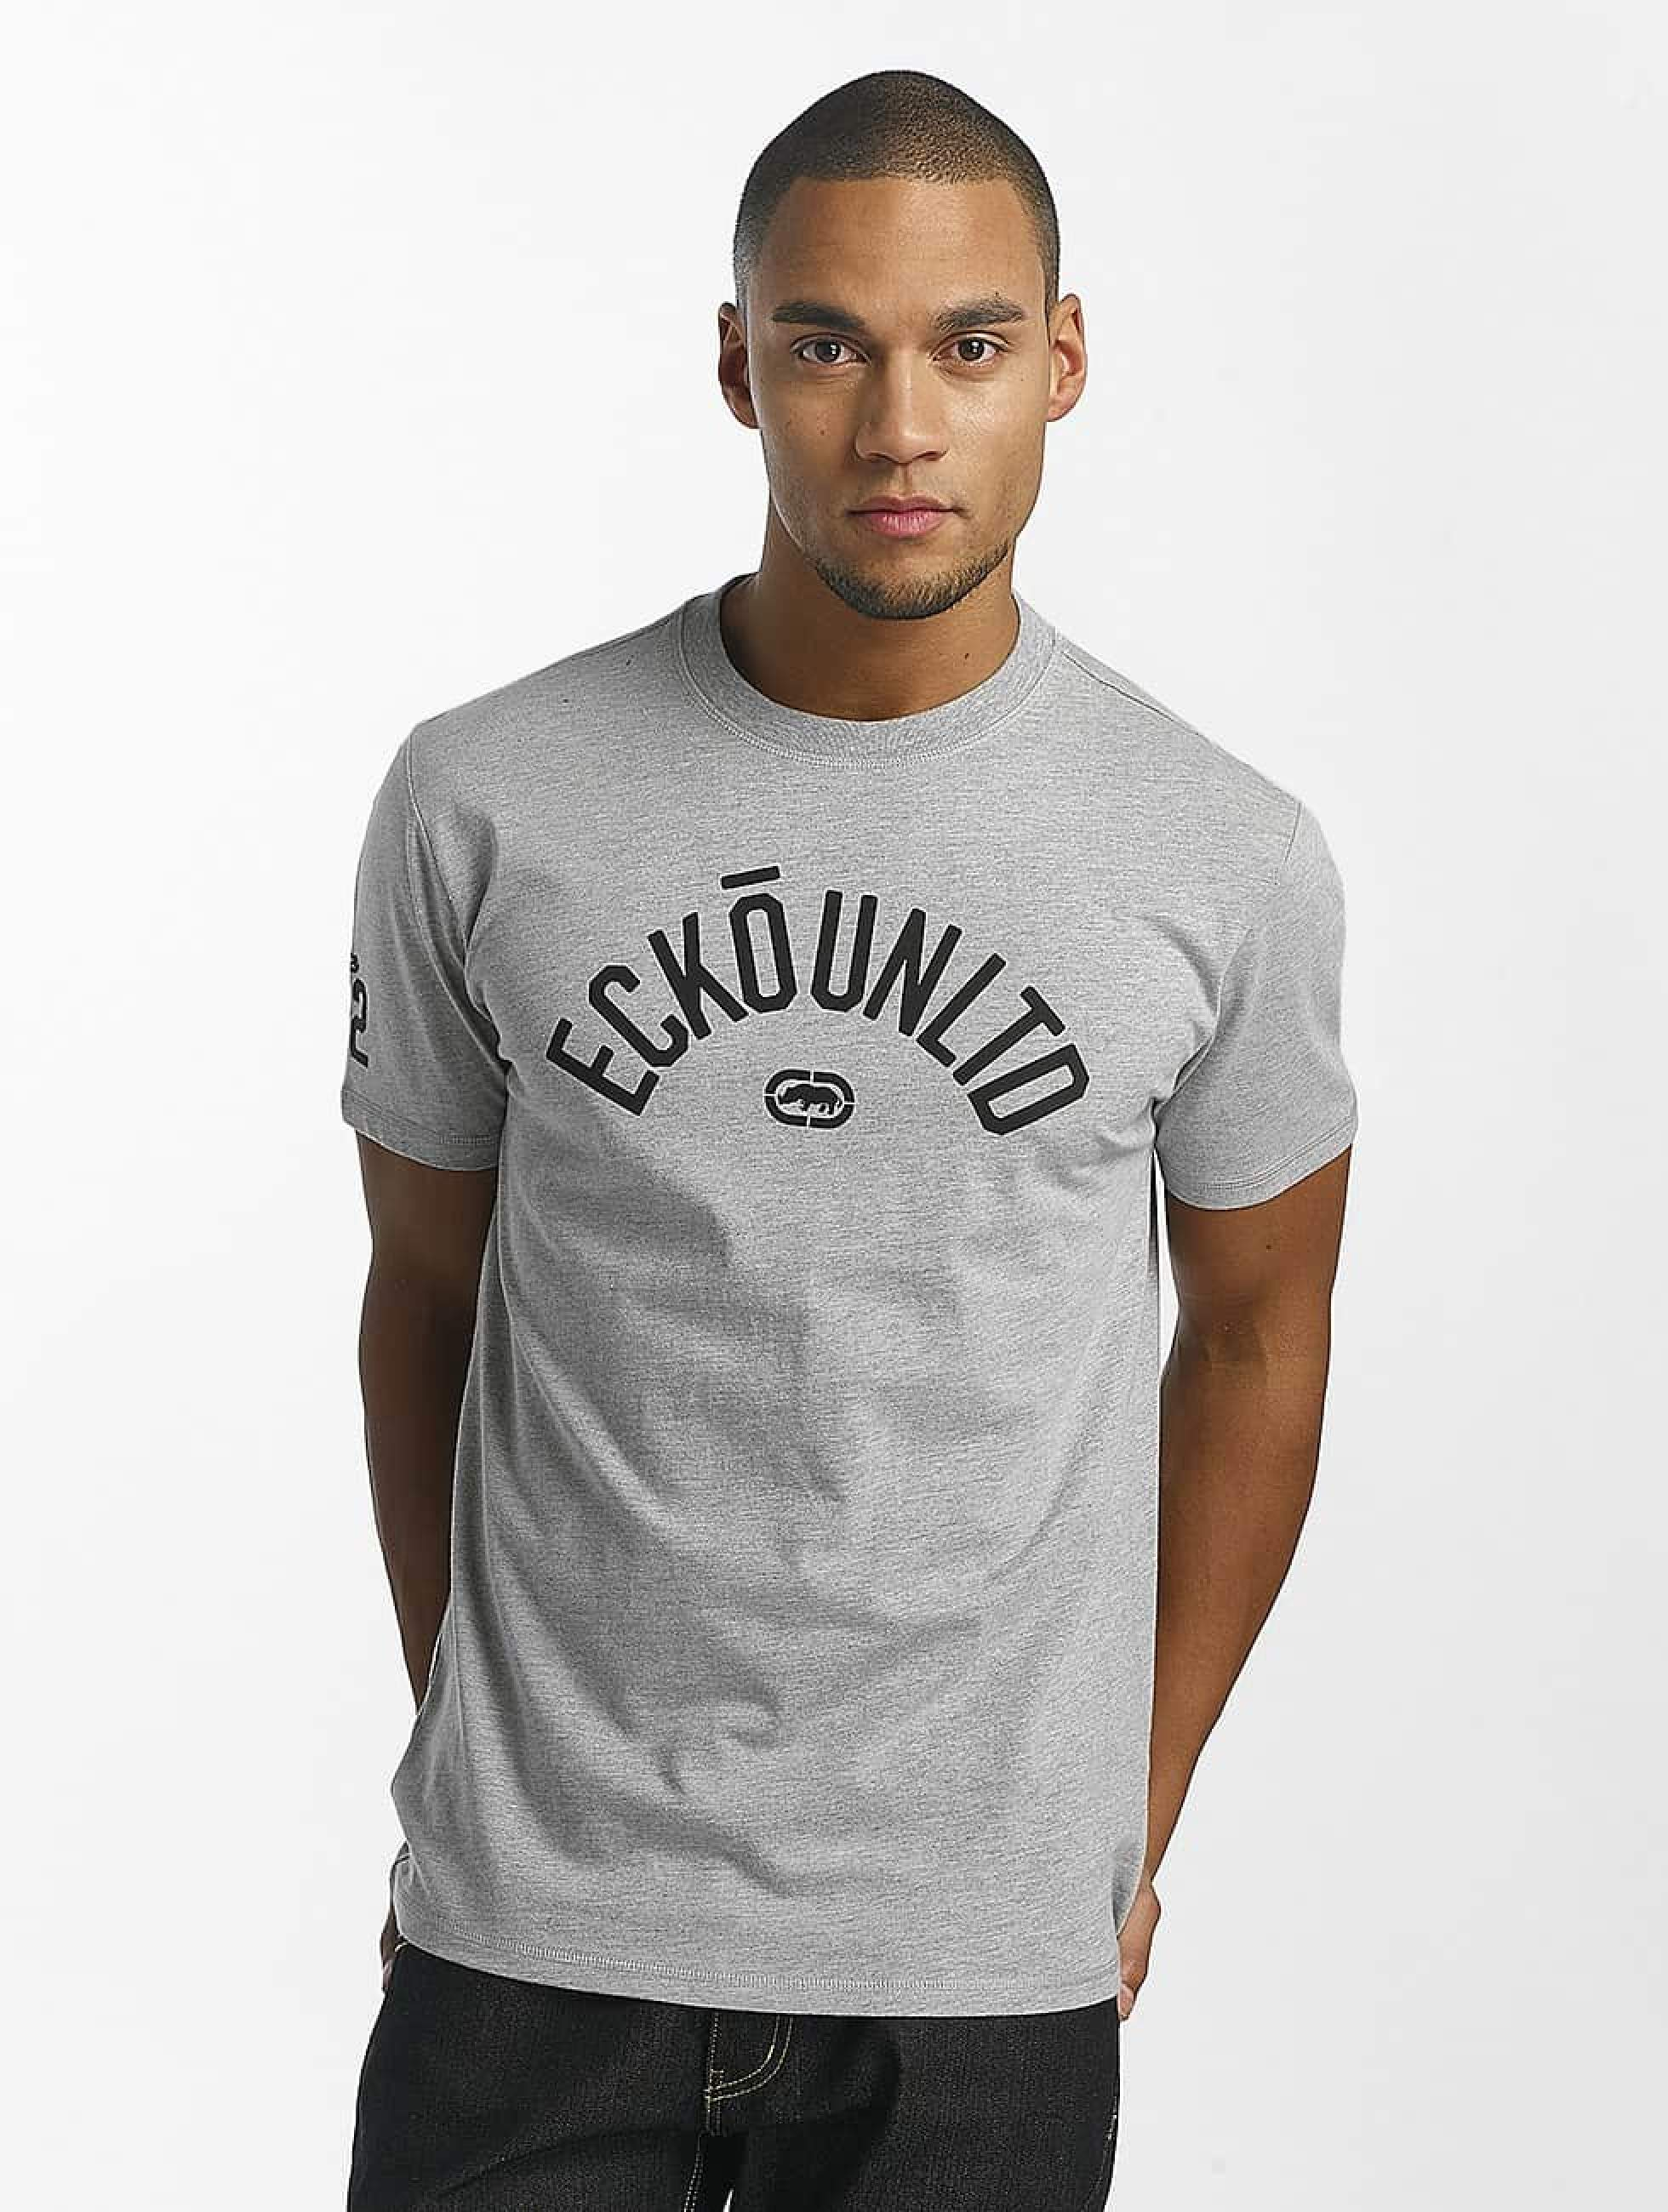 Ecko Unltd. / T-Shirt Base in grey 4XL